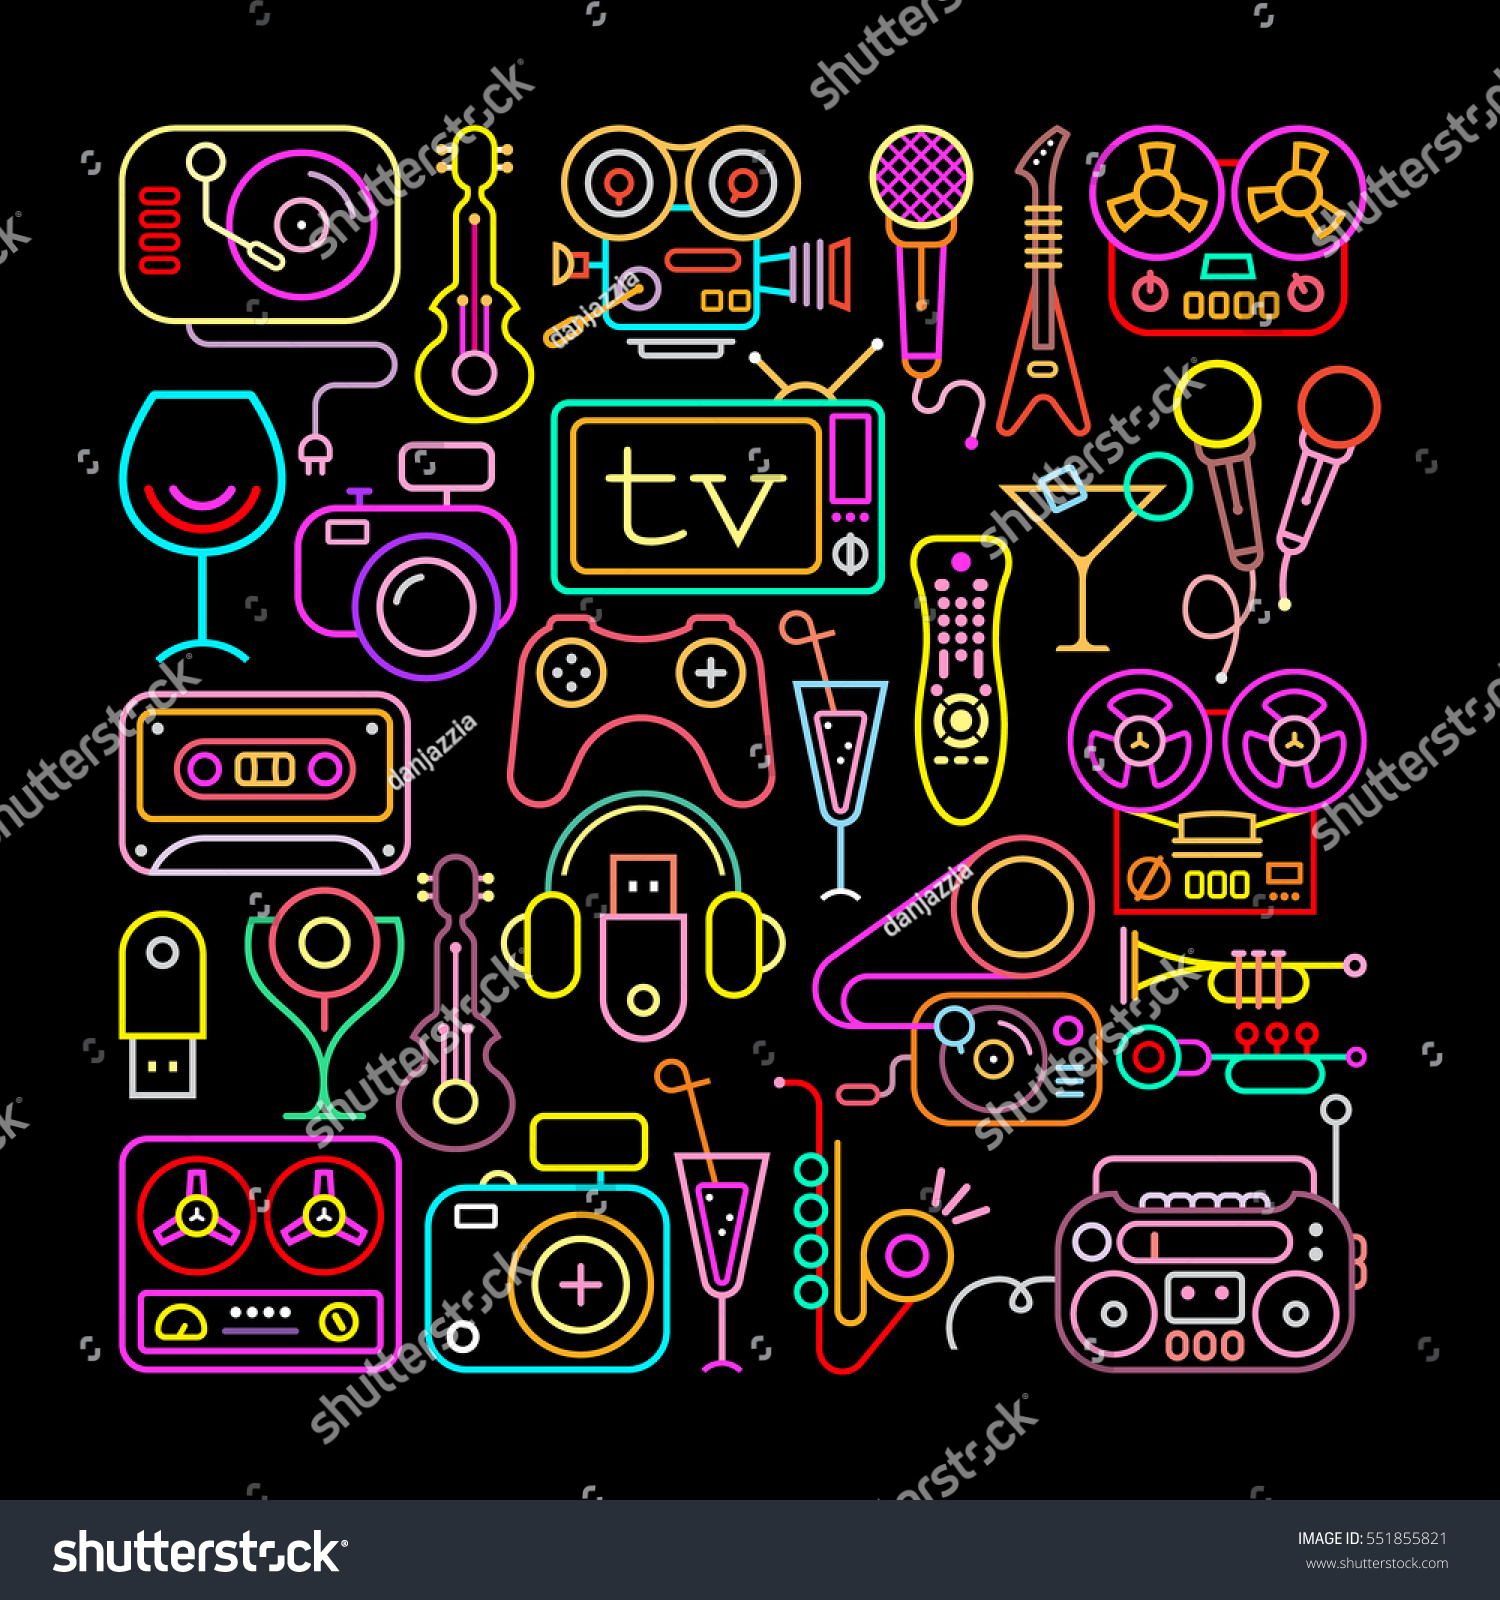 Entertainment Icons Square Shape Illustration Neon Colors Line Art Silhouettes Isolated On A Black Background